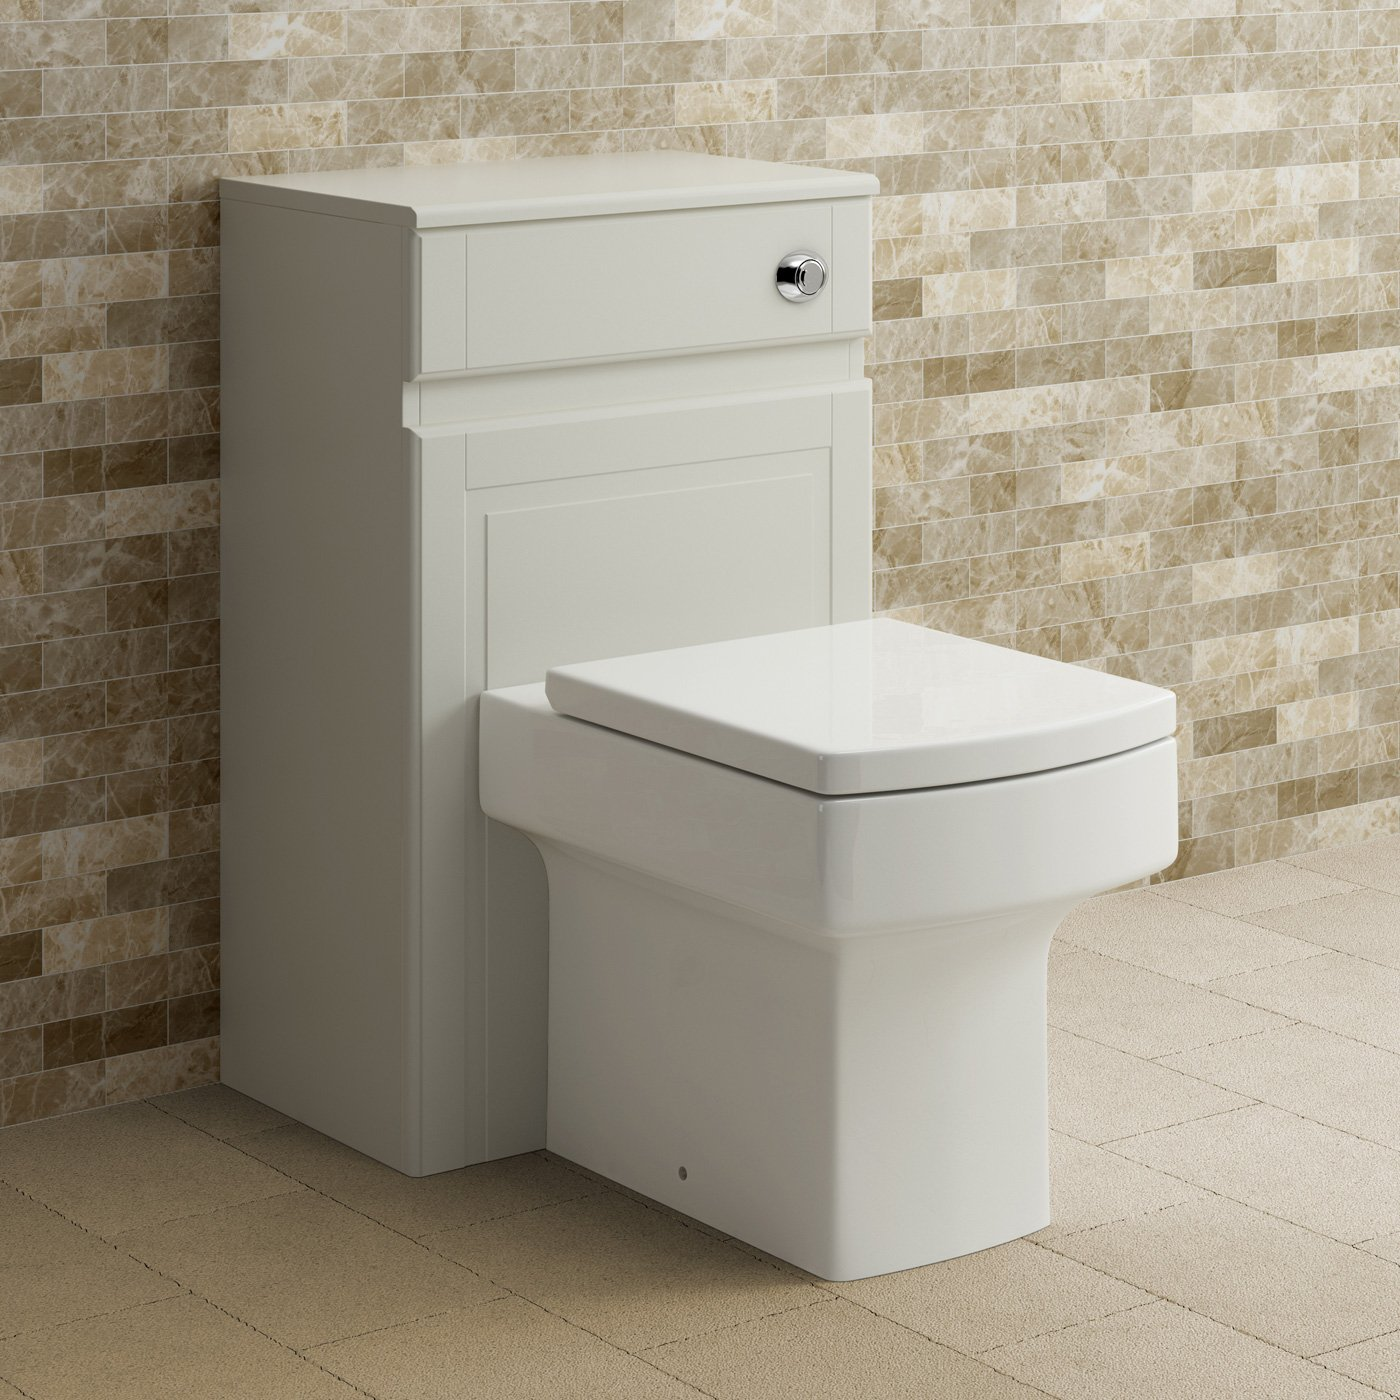 500mm Ivory Back To Wall Toilet Concealed Cistern Housing Unit Bathroom Furniture iBathUK